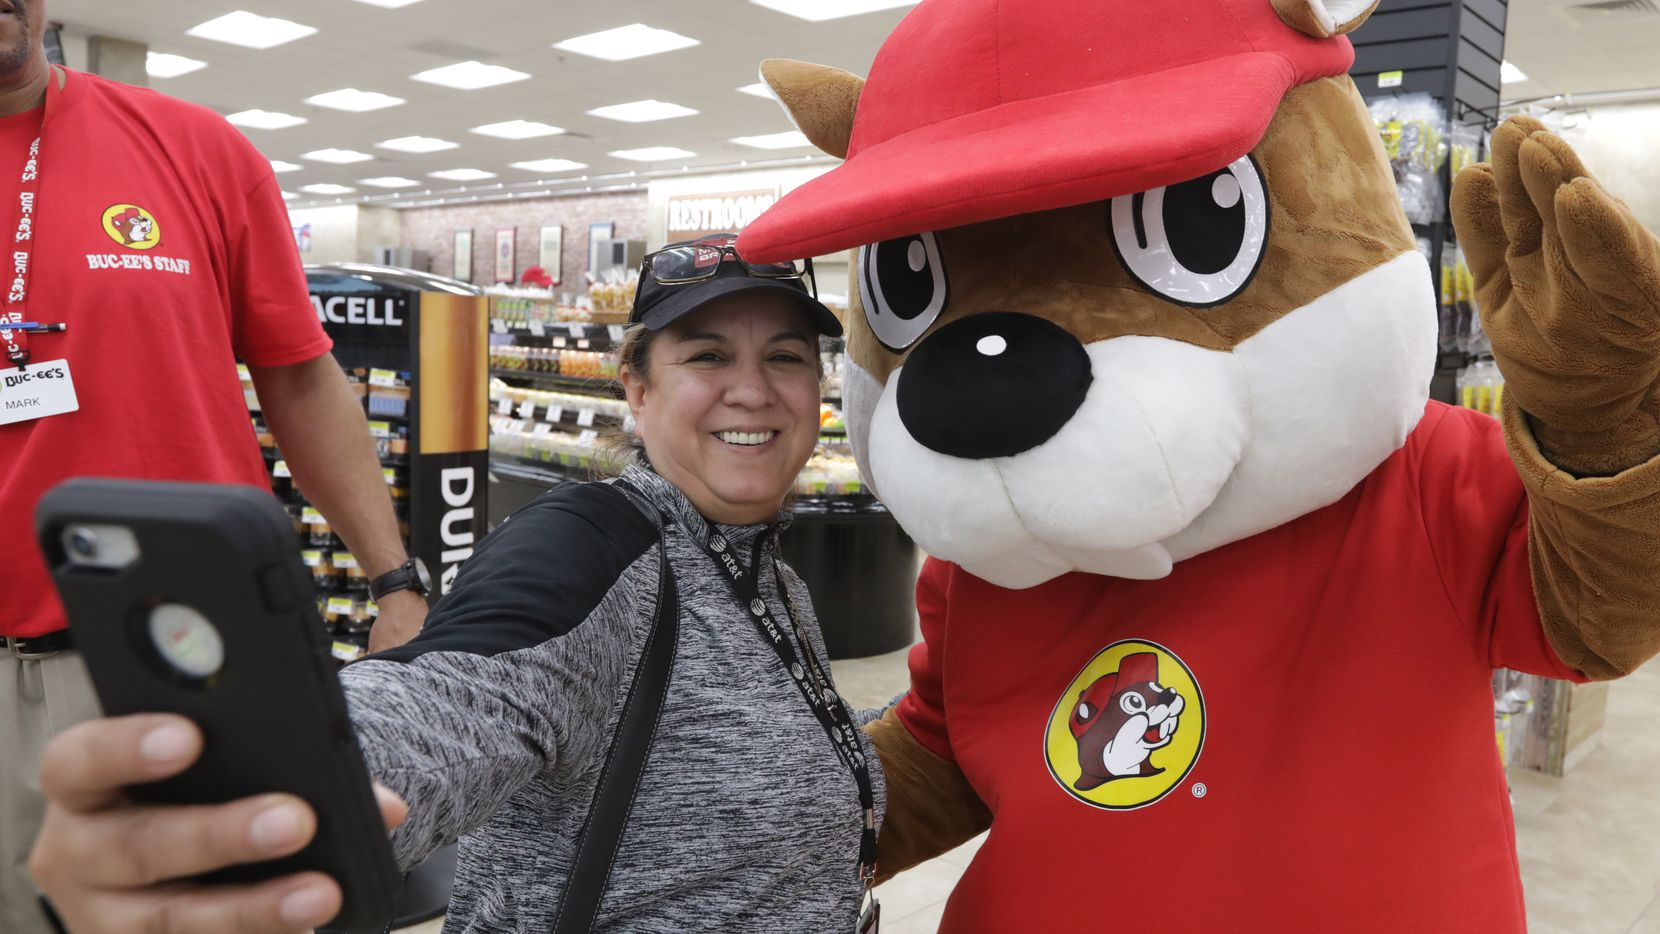 Tania Cortez takes a selfie with the Buc-ee's beaver mascot at the new Buc-ee's in Melissa, TX, on Apr. 29, 2019. The Melissa location is Buc-ee's fourth travel center in North Texas, adding to the ones in Fort Worth, Terrell and Denton. One is expected to open in Royse City later in 2019, and another is planned for Ennis in 2020.